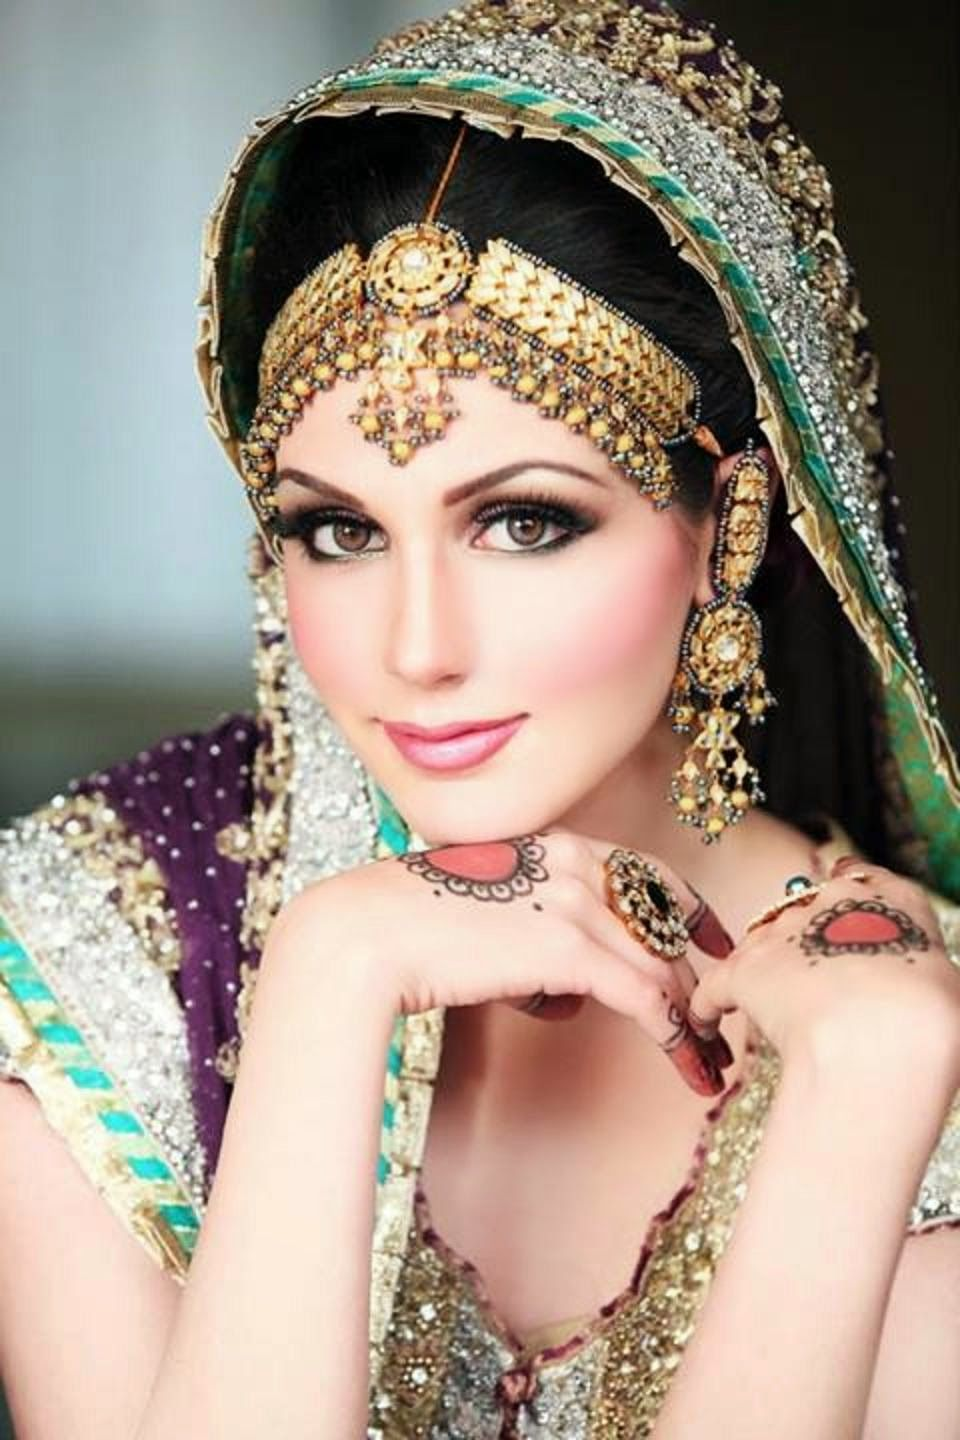 Wallpaper download ladkiyon ke - Dulhan Makeup Ideas 2014 For Girls Hd Wallpapers Free Download Bridal Makeup Ideas With Bridal Picture Pinterest Dulhan Makeup Girls And Fashion